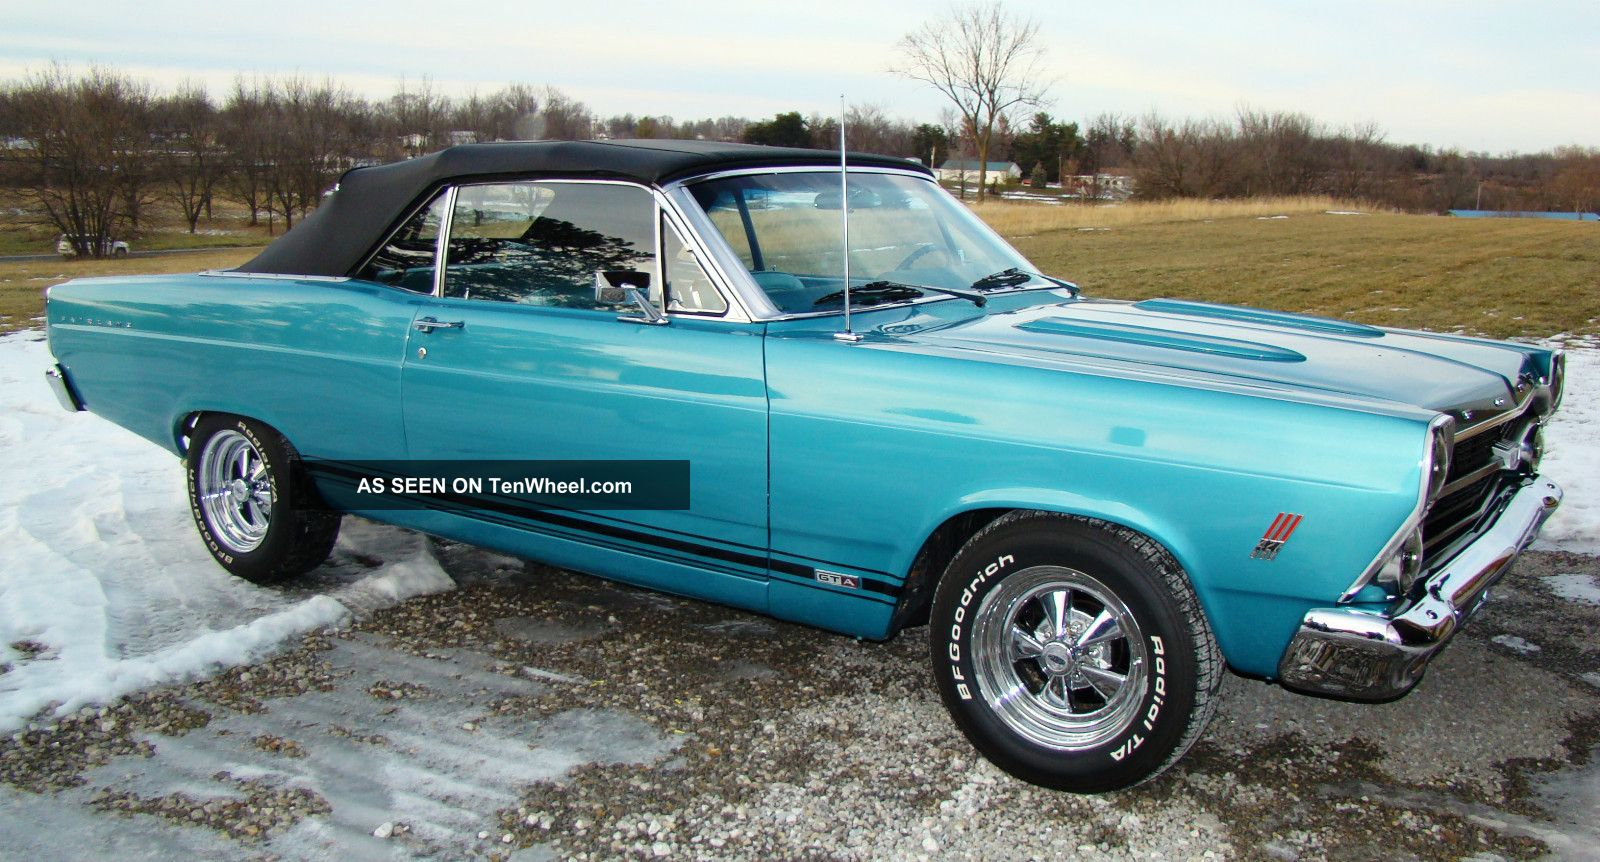 1967 Ford Fairlane Gta Convertible With Pro Built 427 Side Oiler Alfa Romeo Spider Fuel Diagram 2x4 Holleys